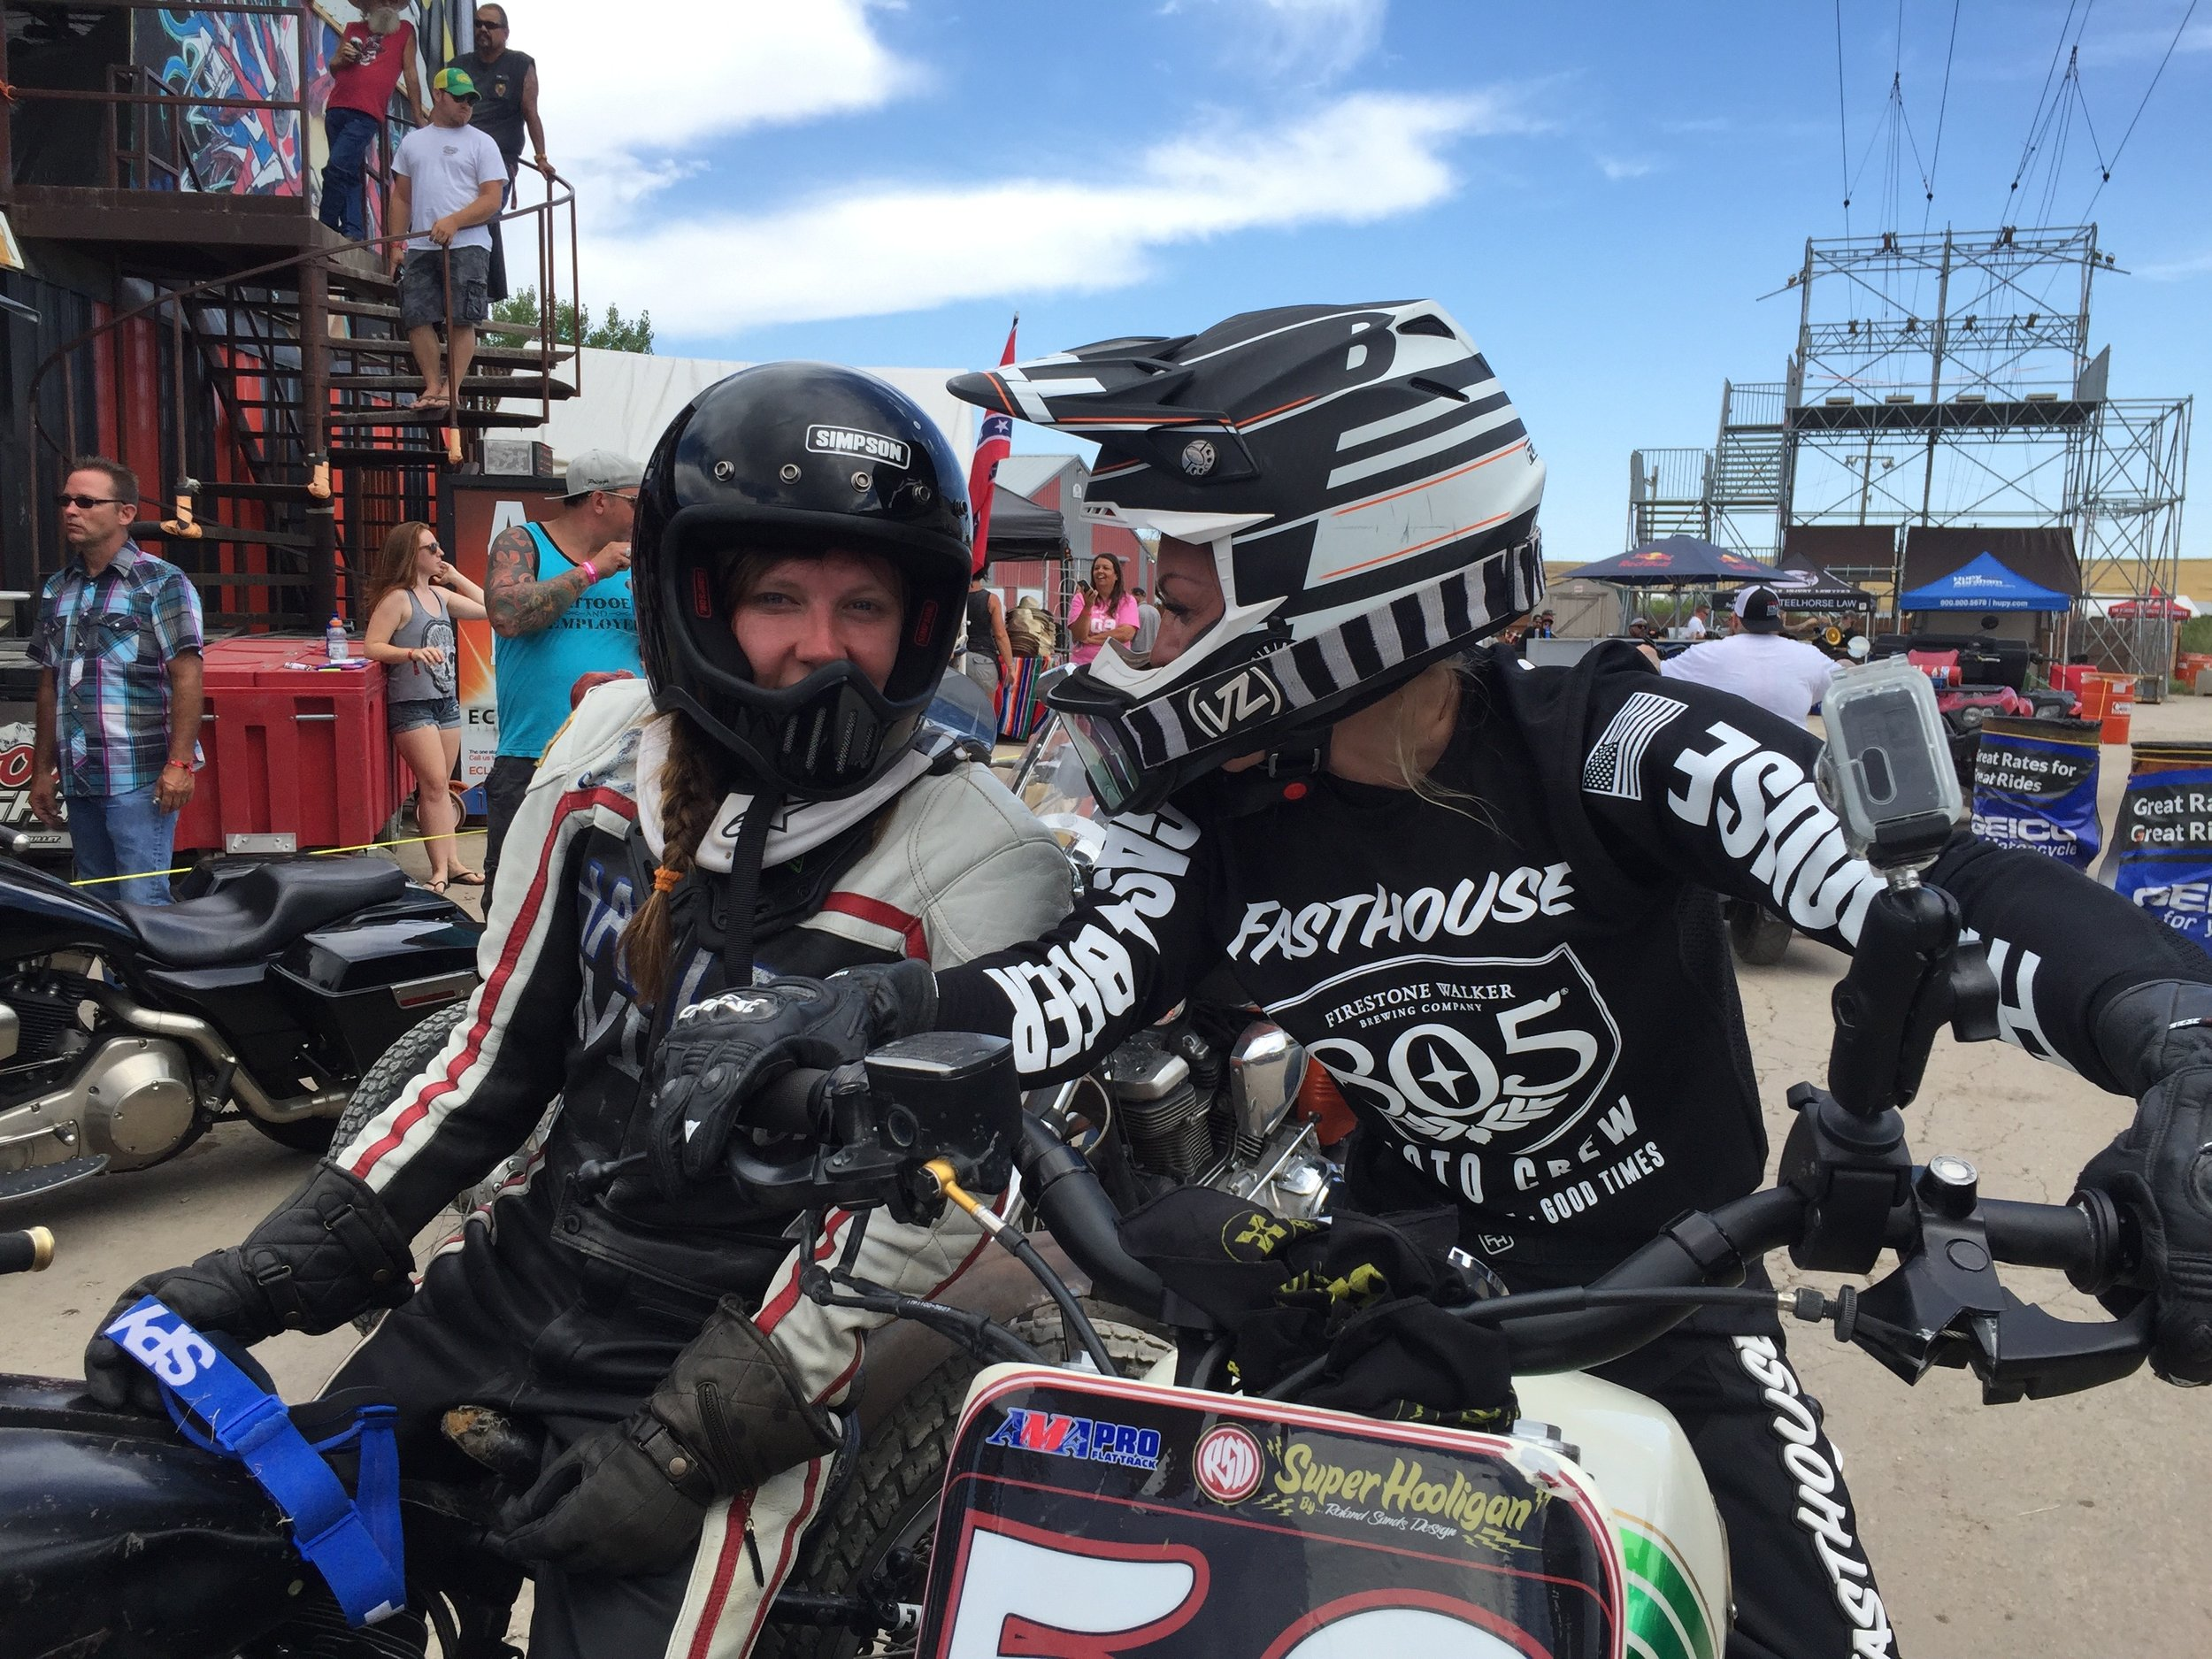 Leticia Cline and Britney Olsen Flat Track Racing Sturgis